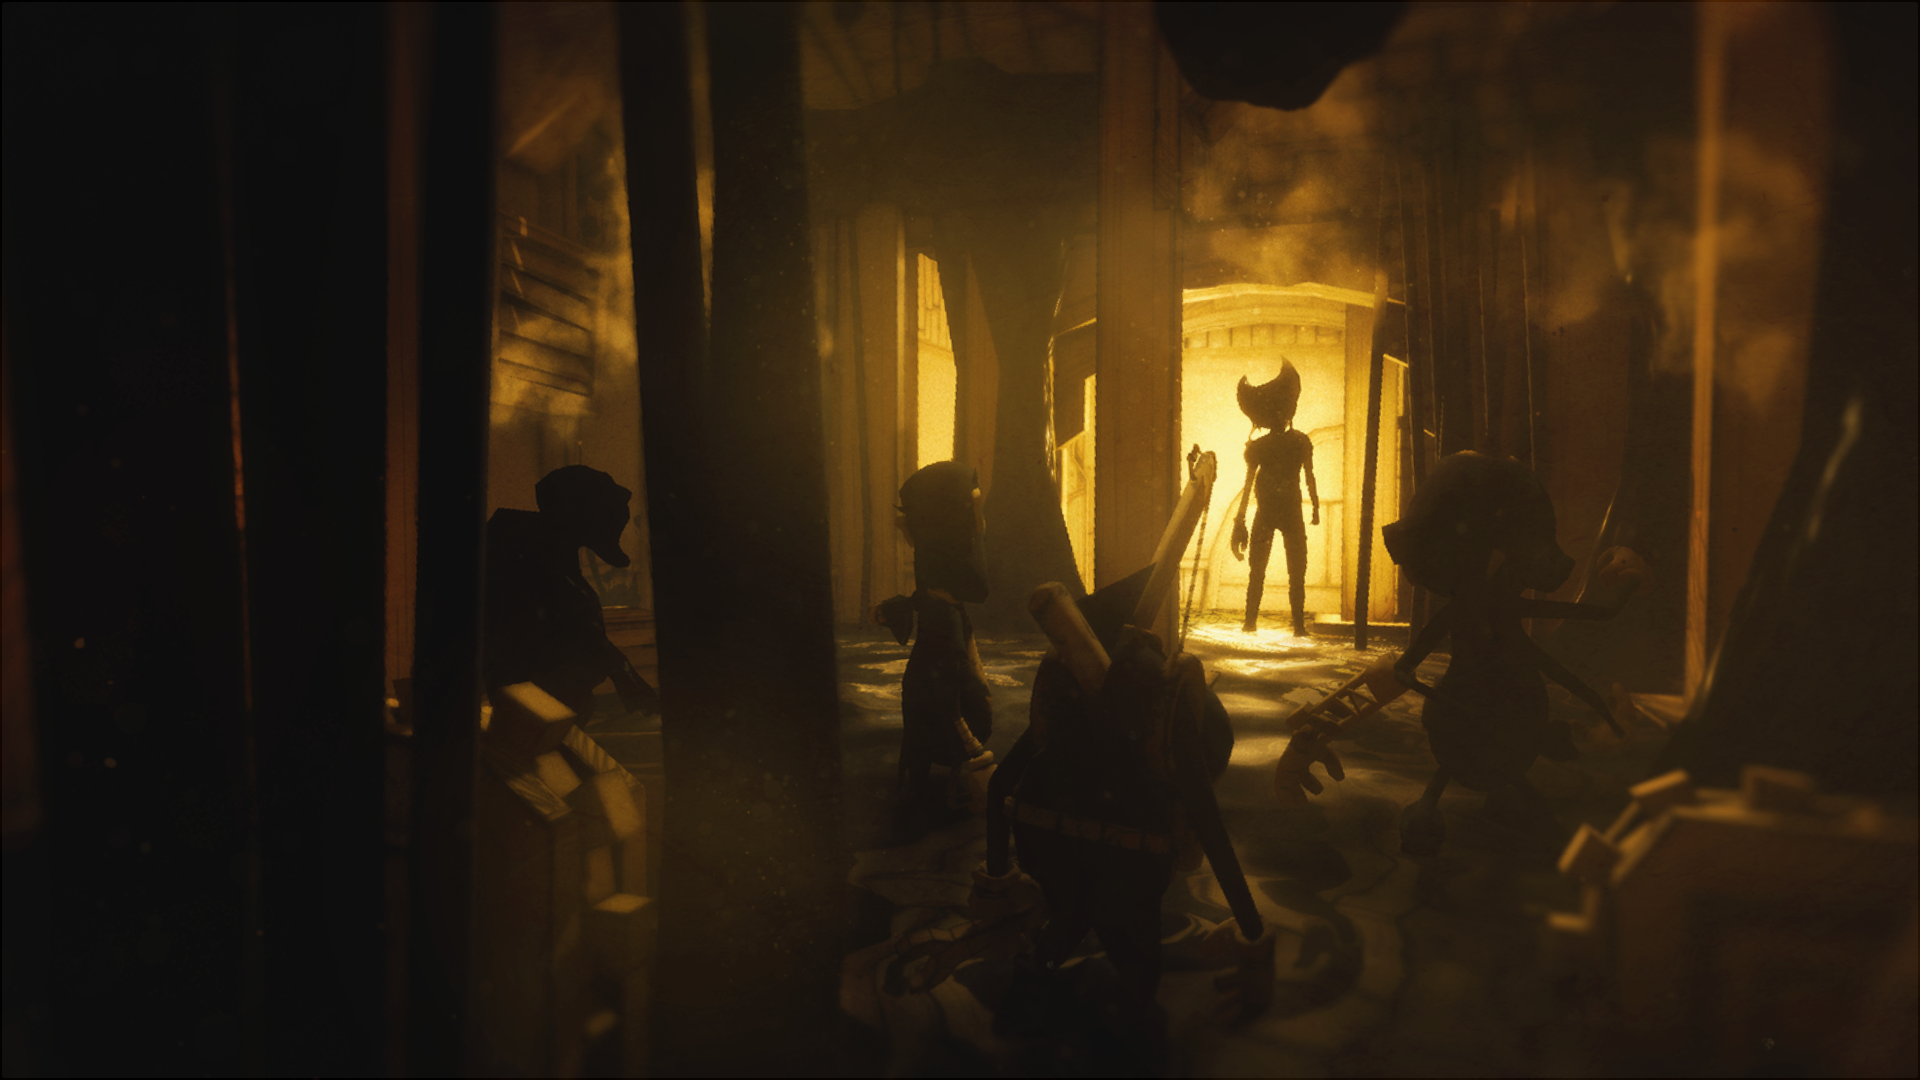 bendy and the ink machine chapter 3 review alice is here player one